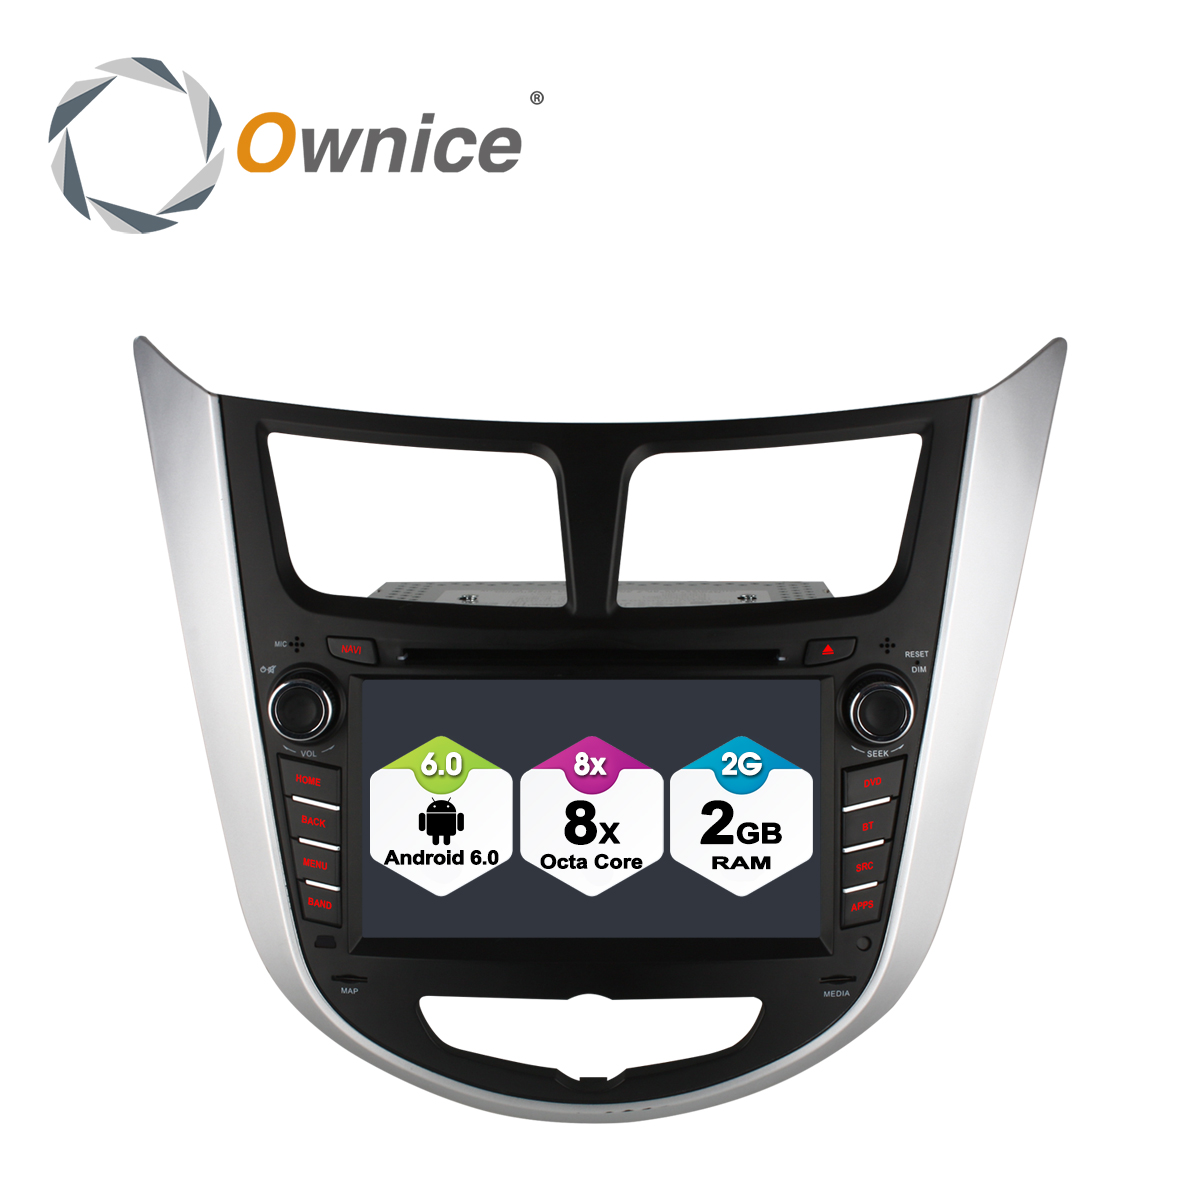 Ownice C500 Android 6 0 2G RAM Octa Core font b Car b font dvd gps